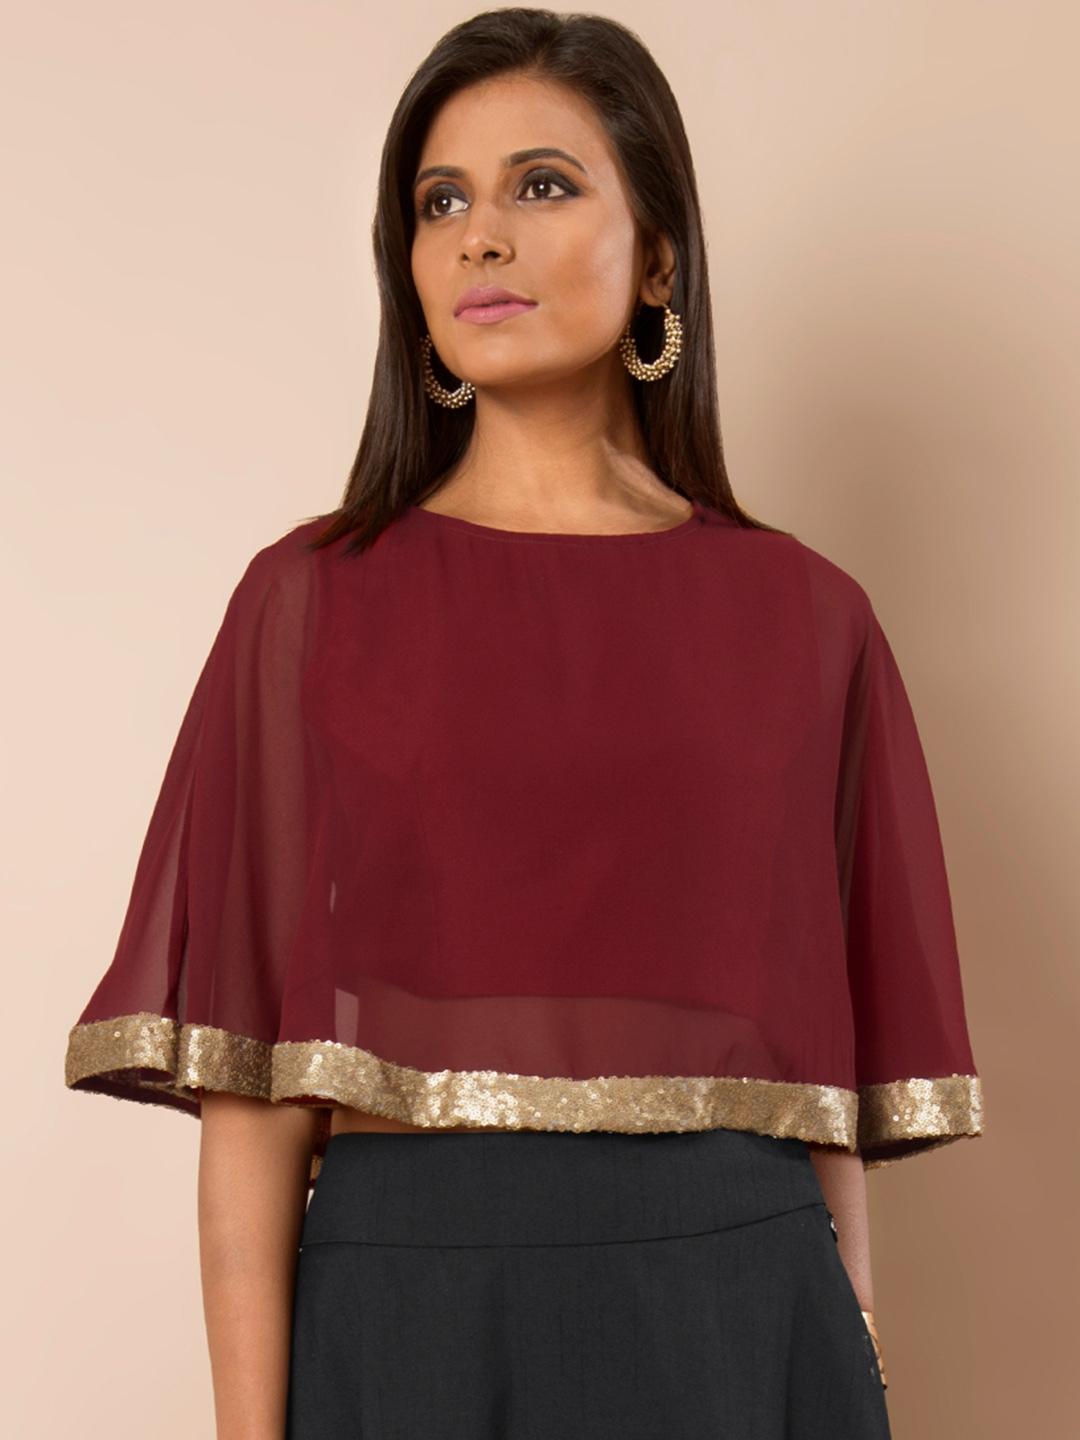 8ea1c4e38199c4 Buy INDYA Maroon Cape Crop Top With Sequinned Detail - Tops for ...